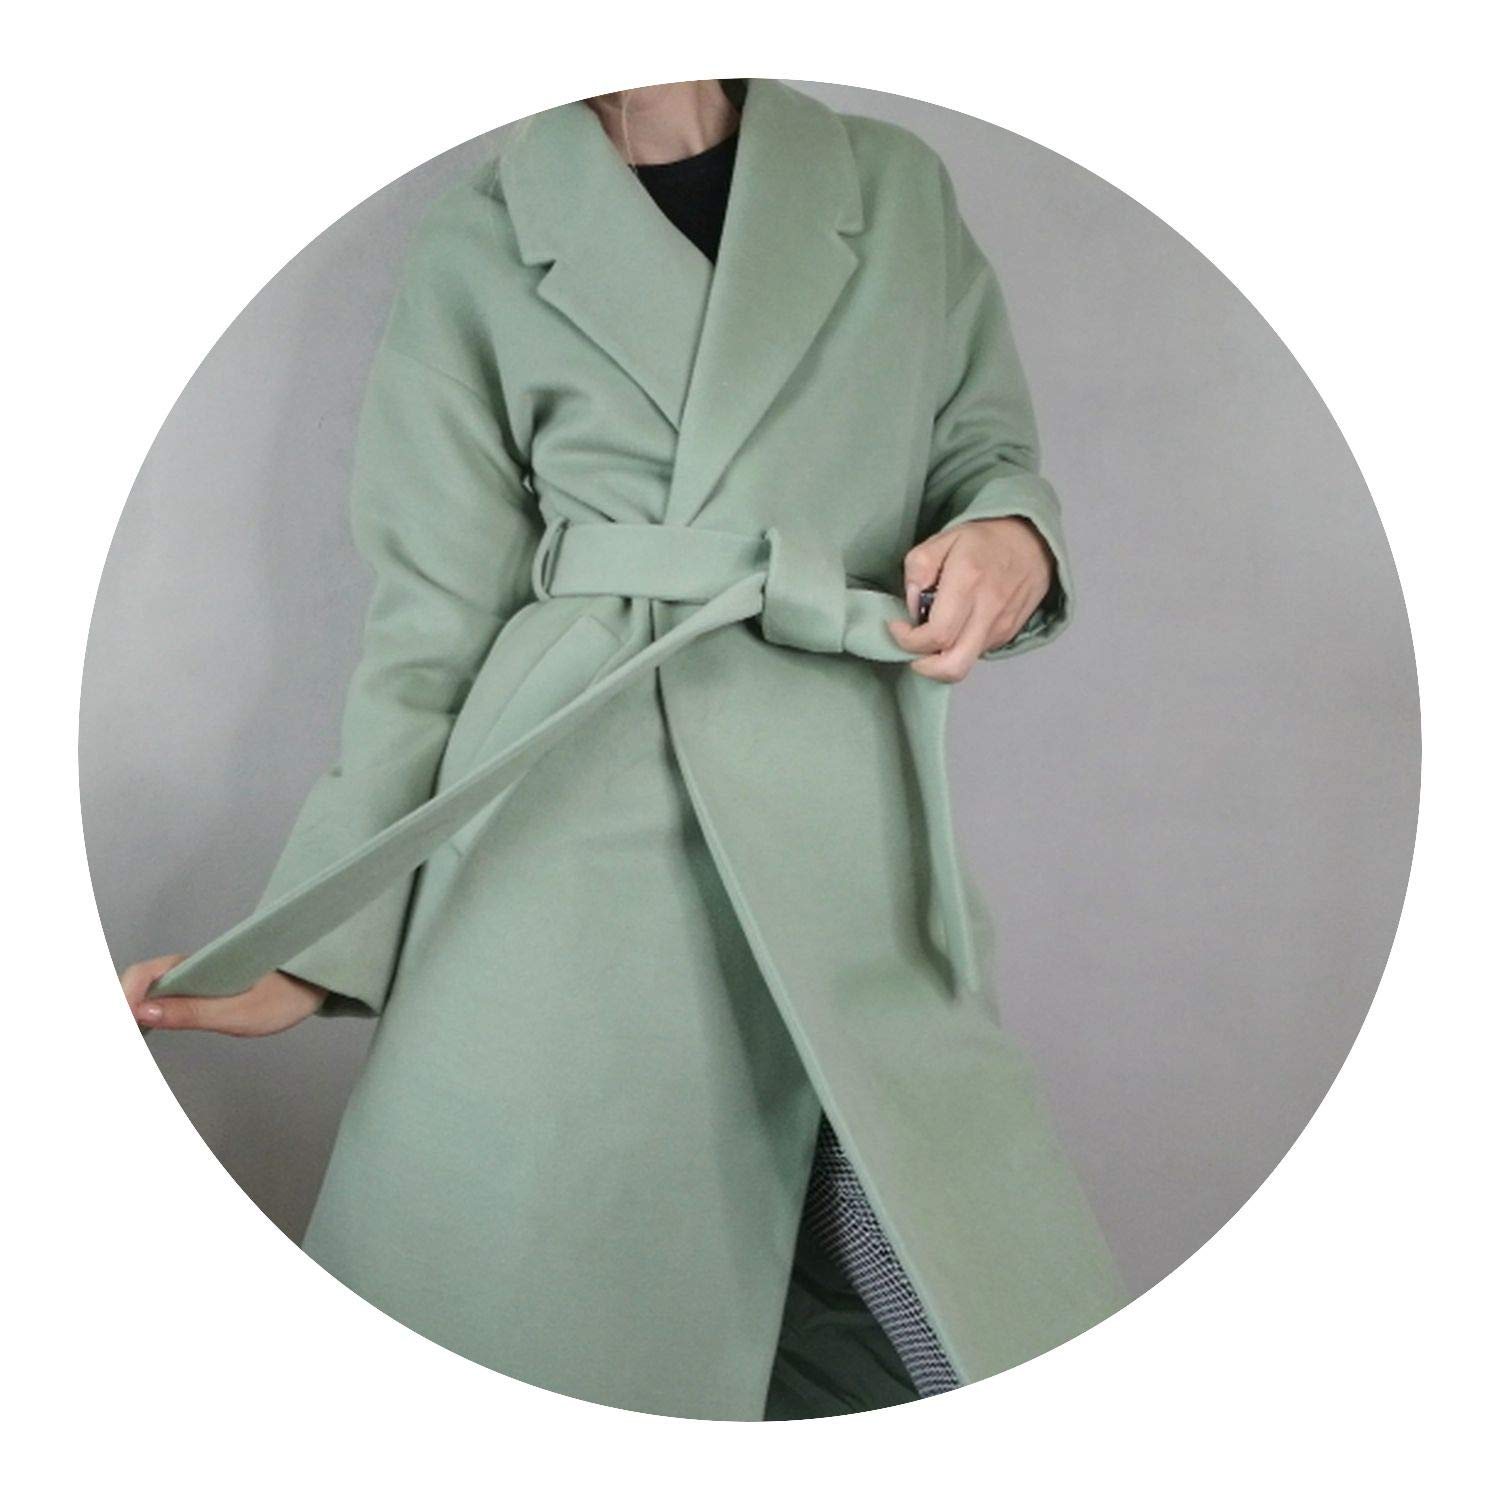 Amazon.com: Fall Winter Cashmere Look Robe Belted Coat Woolen Outerwear Manteau Femme Abrigos Mujer: Clothing